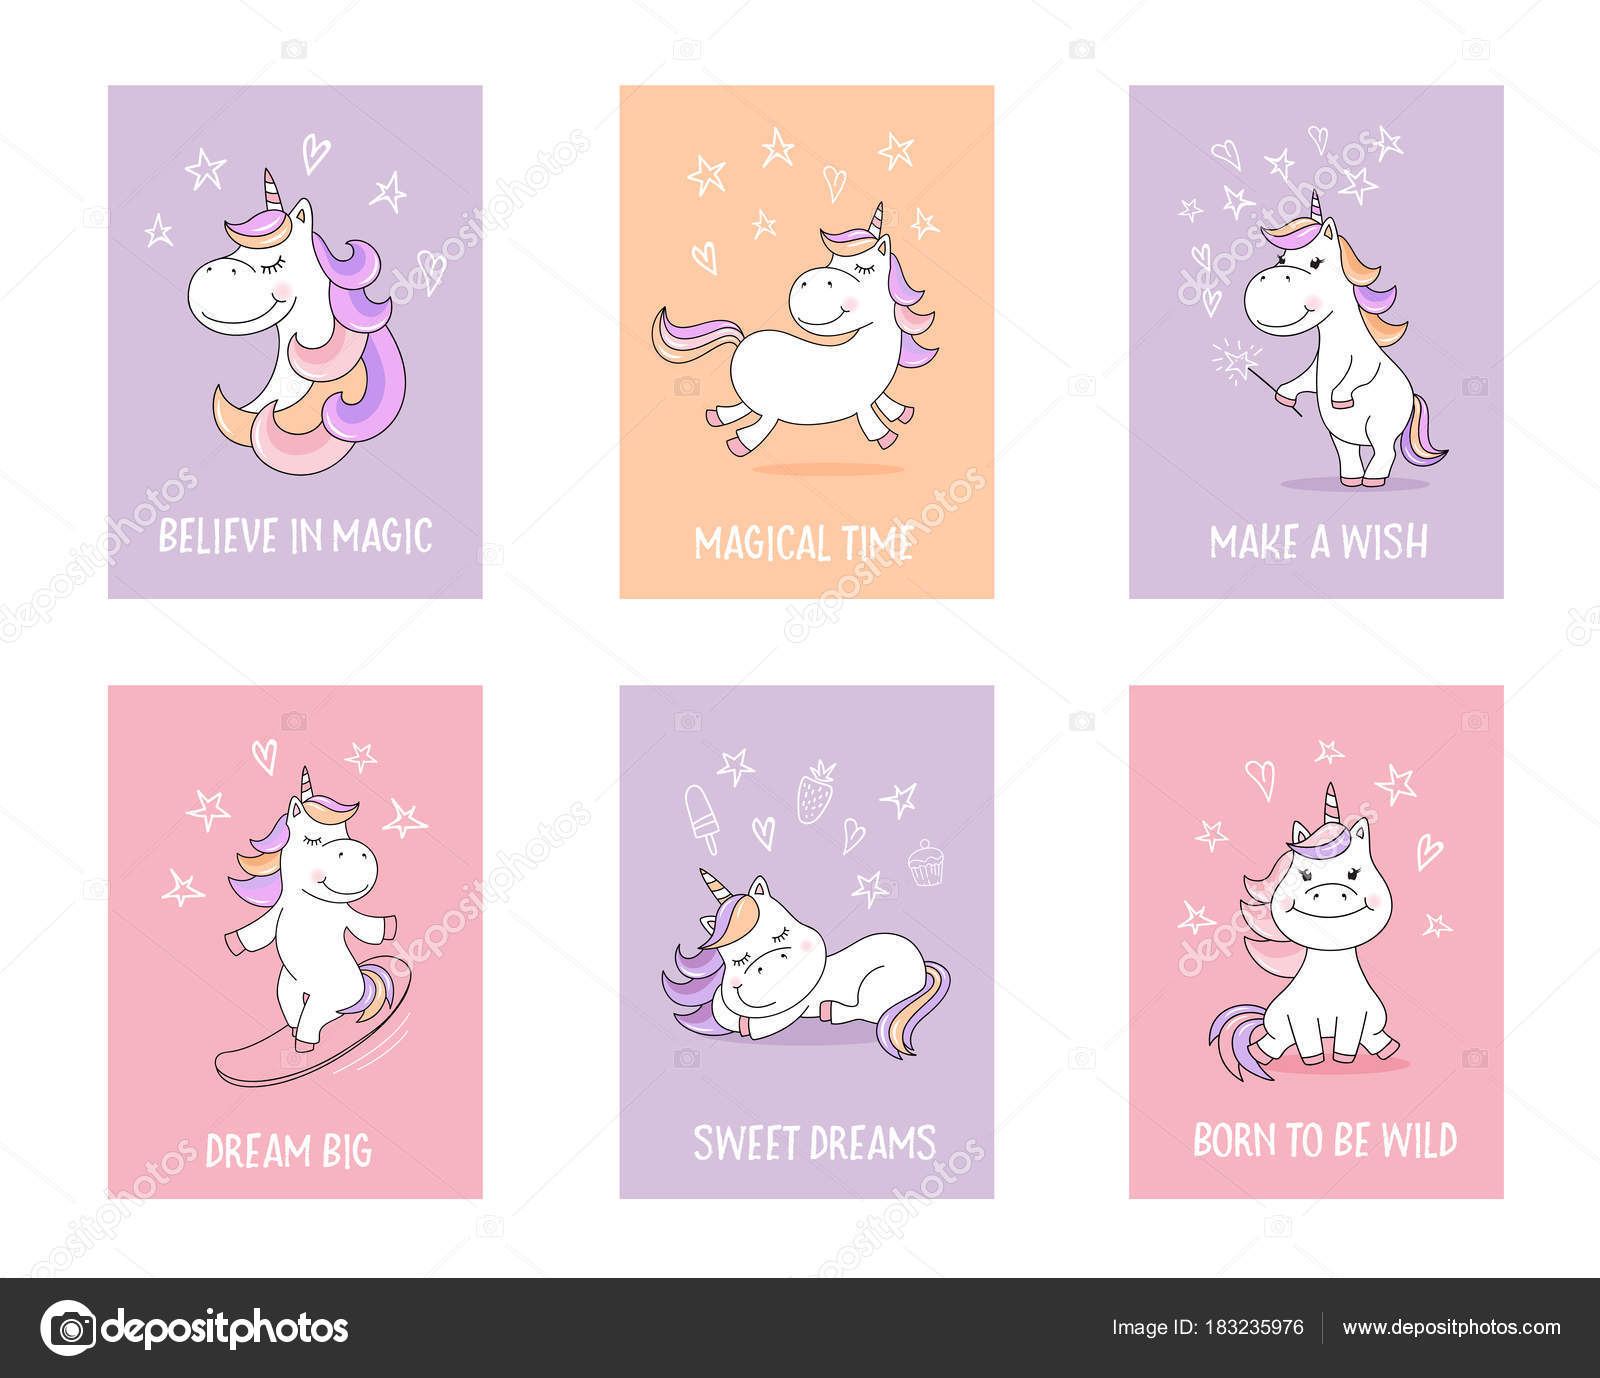 Cute unicorn greeting cards quotes magical symbols stock vector cute unicorn greeting cards quotes magical symbols stock vector m4hsunfo